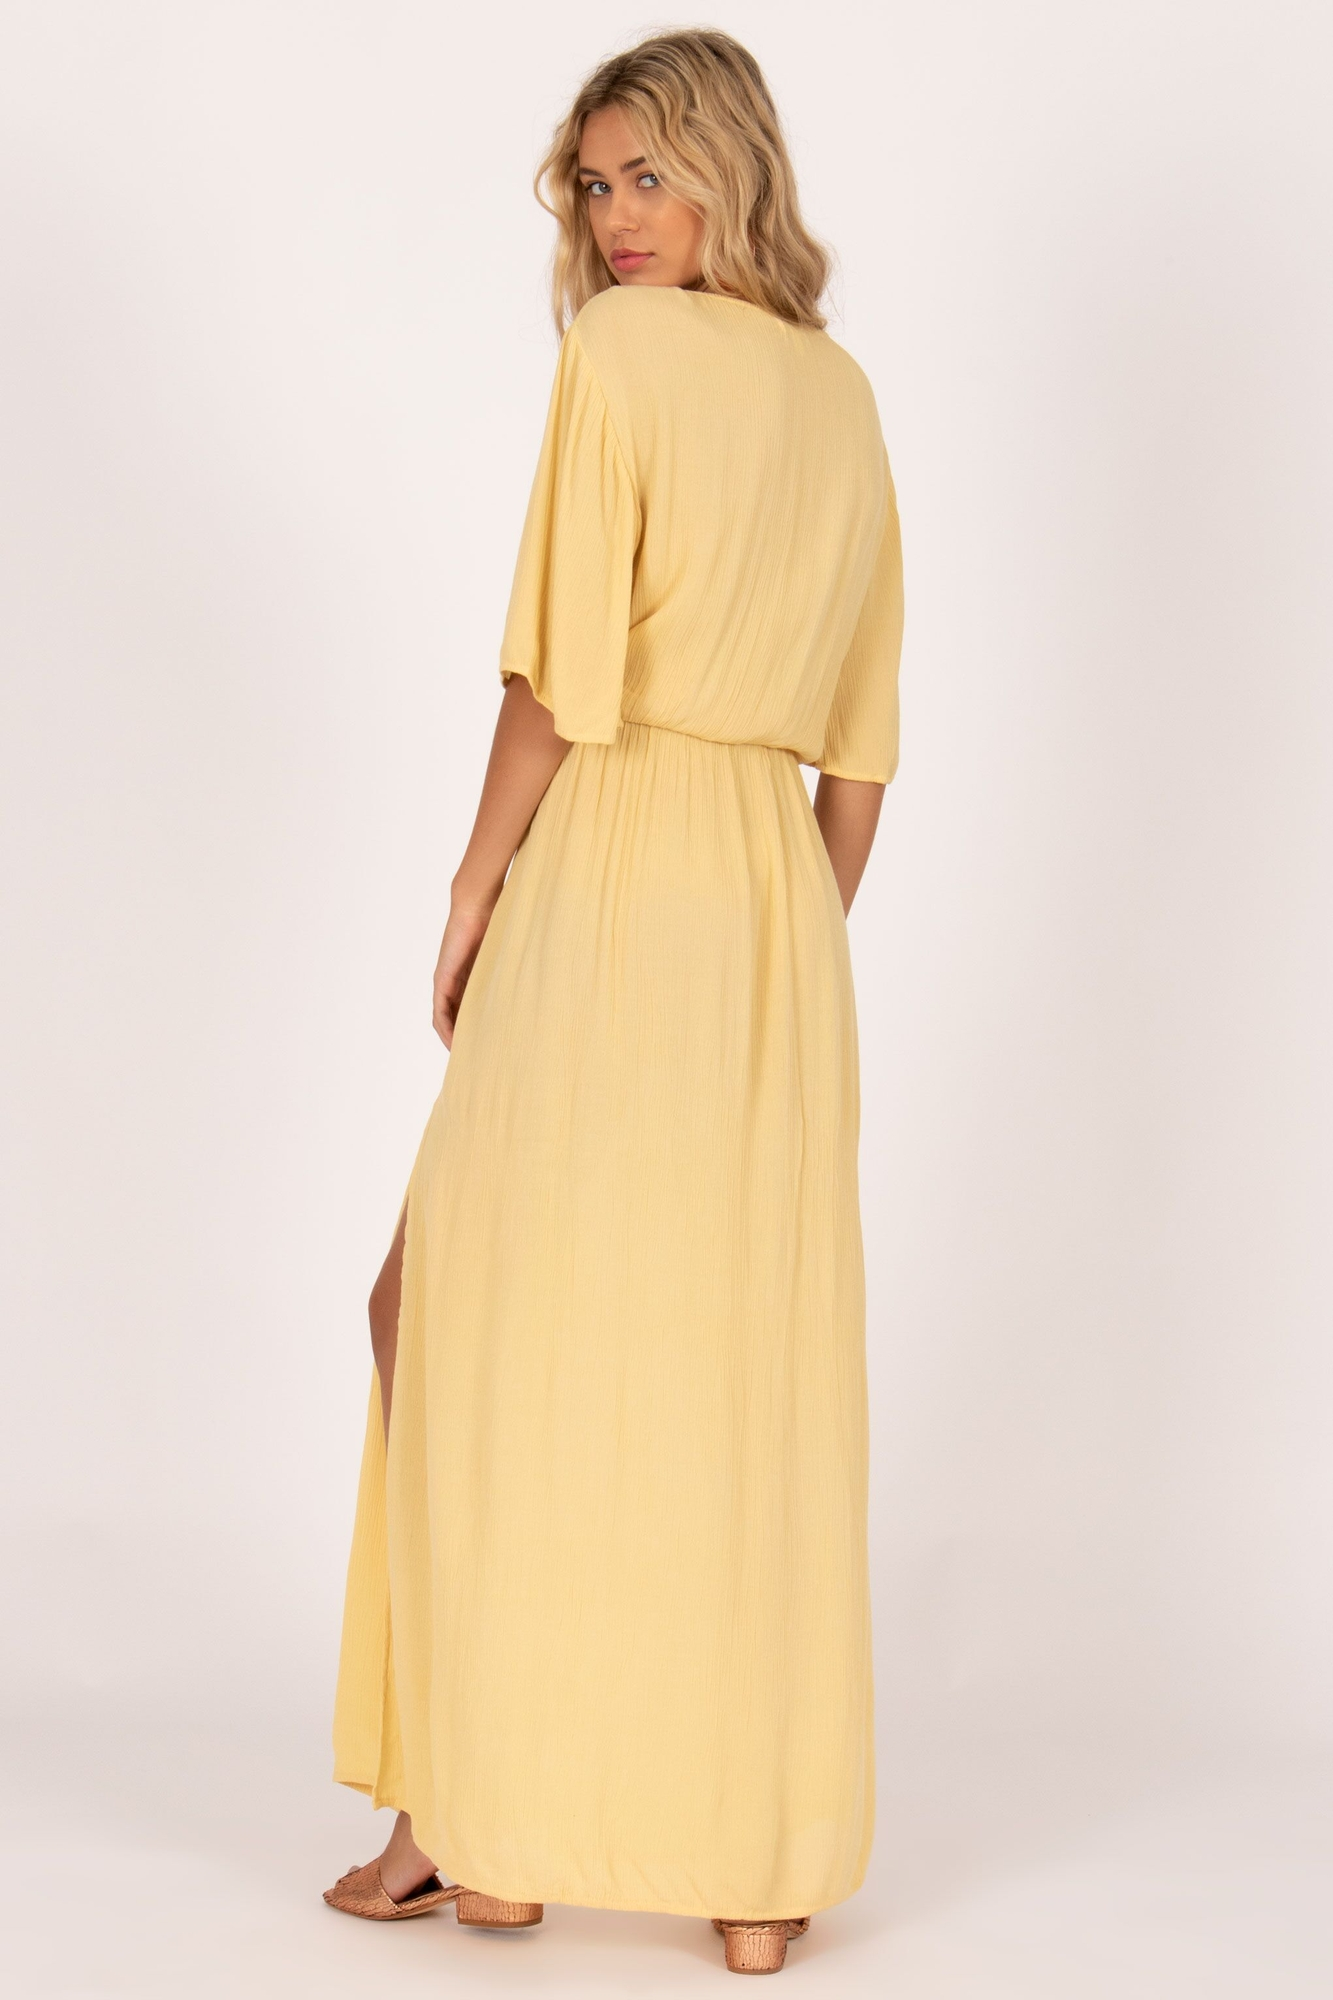 Lemongrass Dress